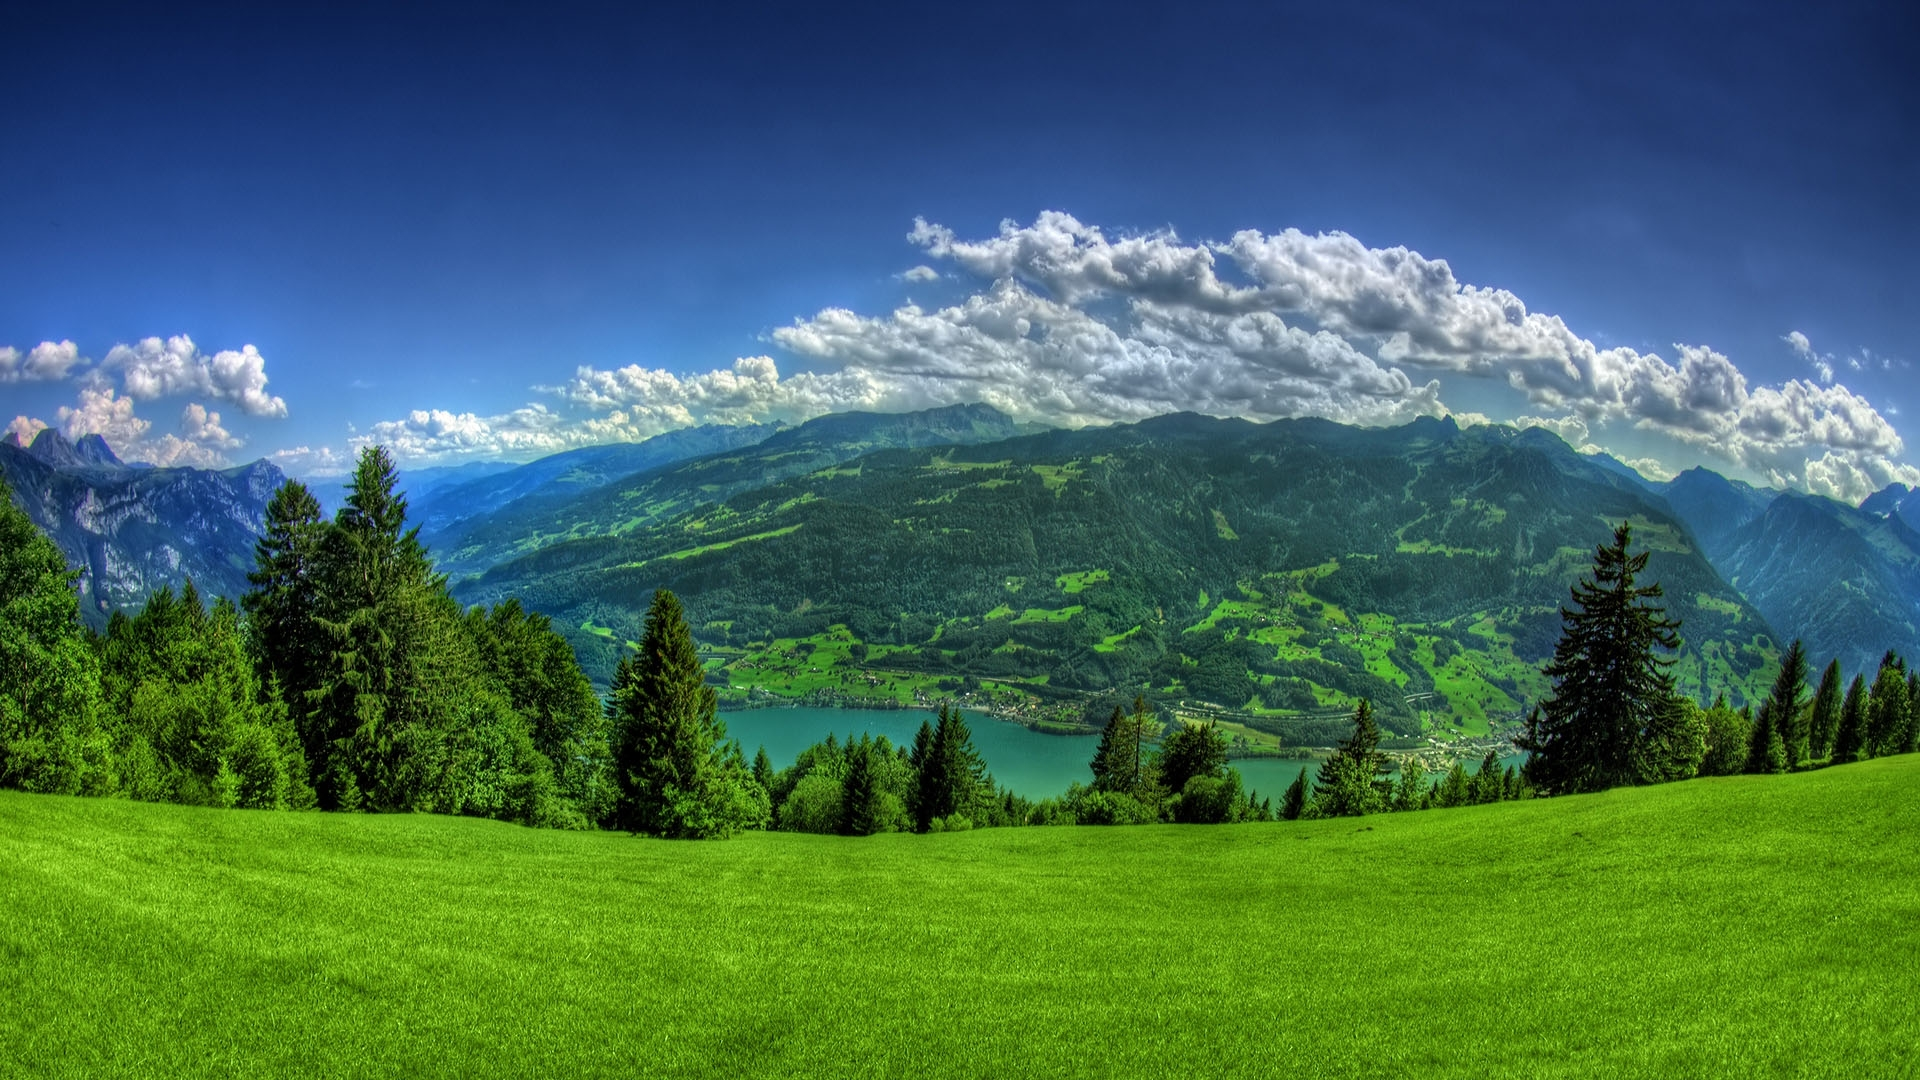 48617 download wallpaper Landscape, Nature, Mountains screensavers and pictures for free